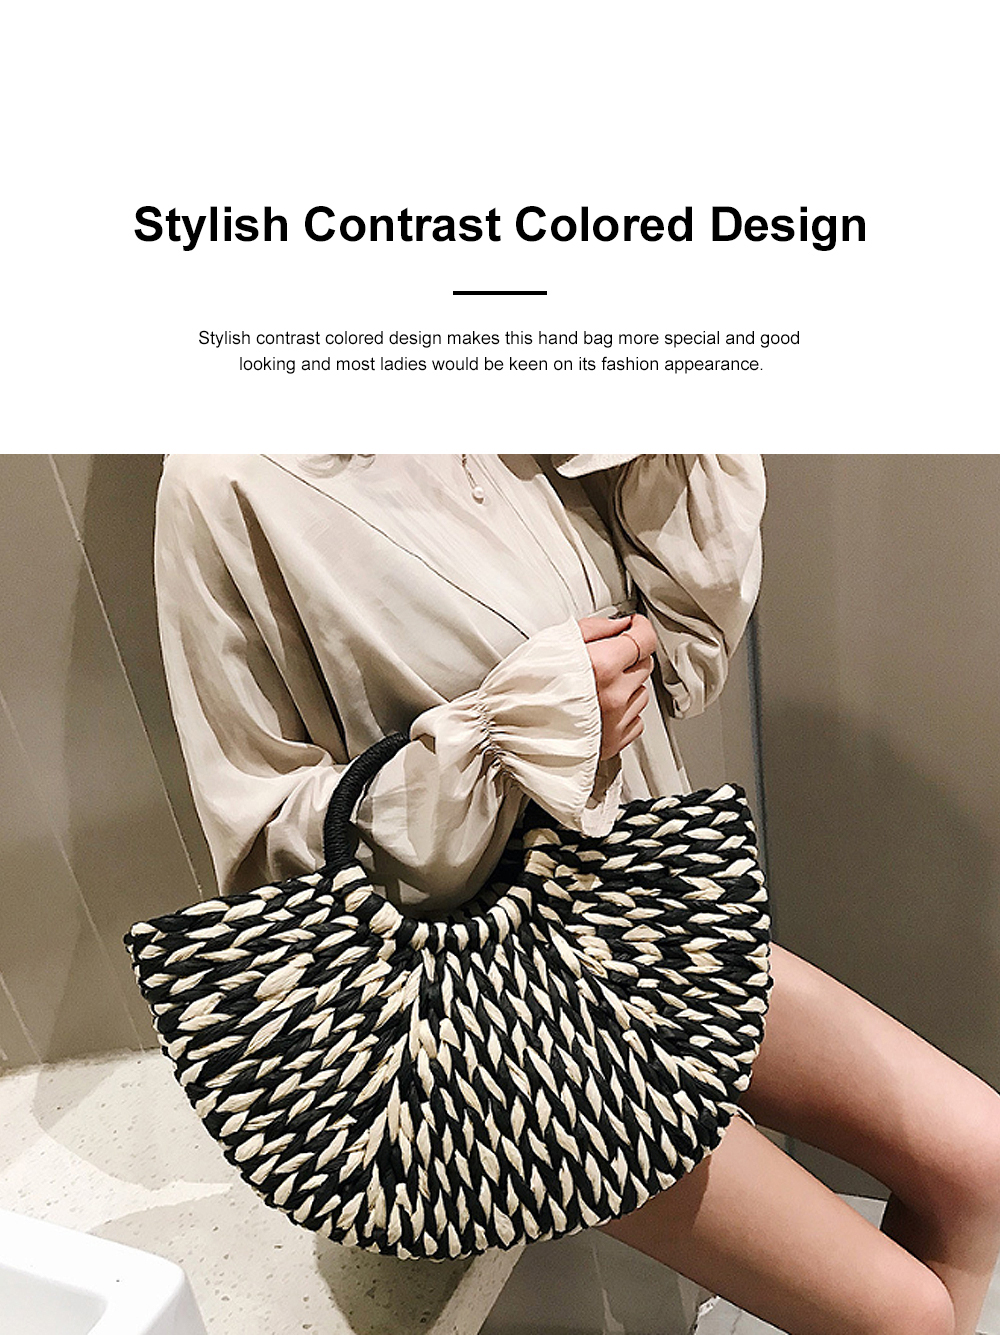 Fancy Elegant Contrast Colored Lady Straw Hand Bag, Minimalist Arch Vacation Beach Hand Bag for Women 1